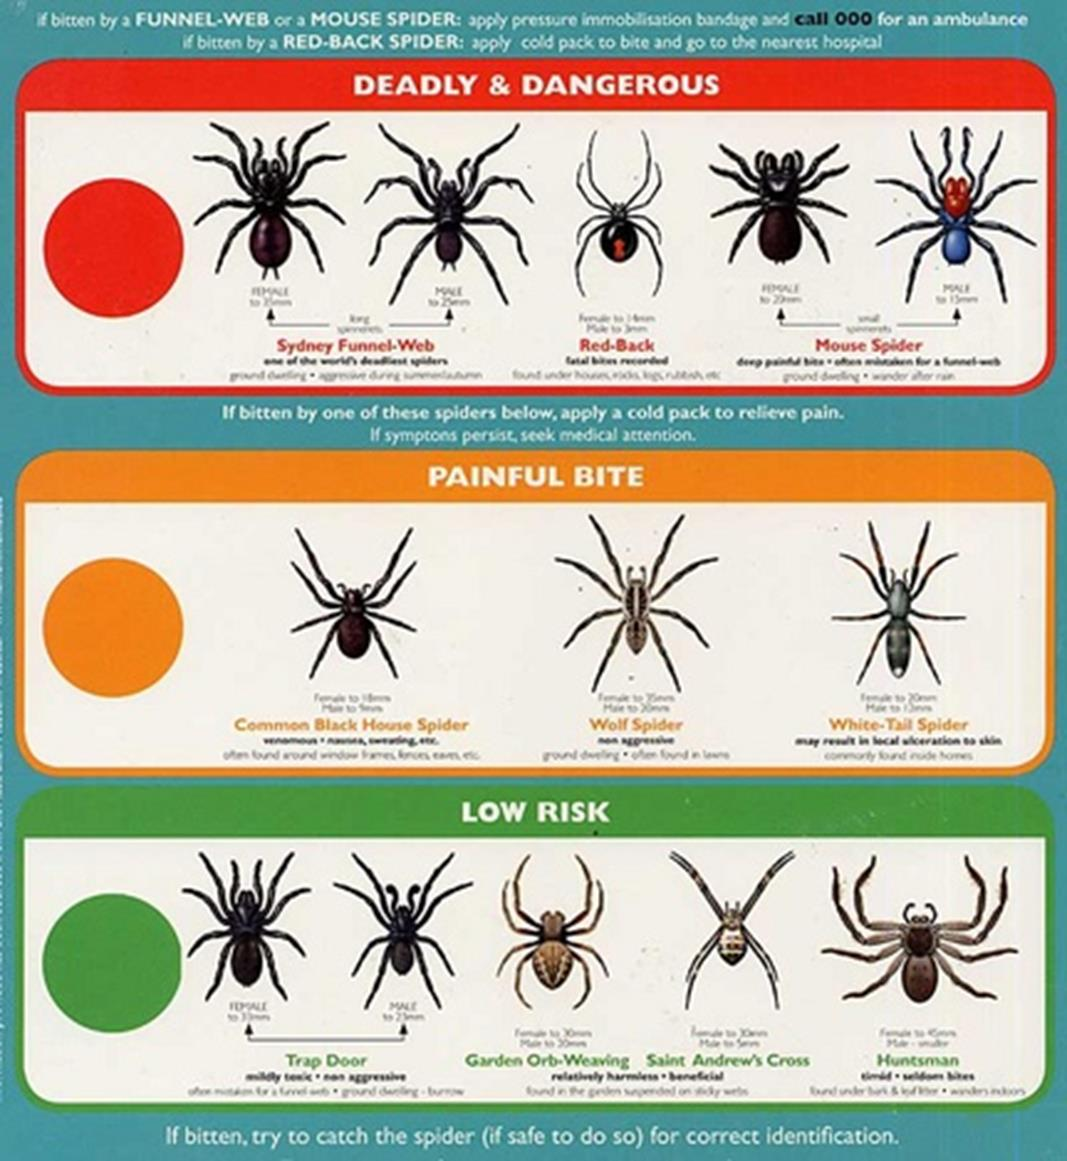 All About Spiders Types Of Spiders Life Cycle Etc - Map of poisonous spiders in the us